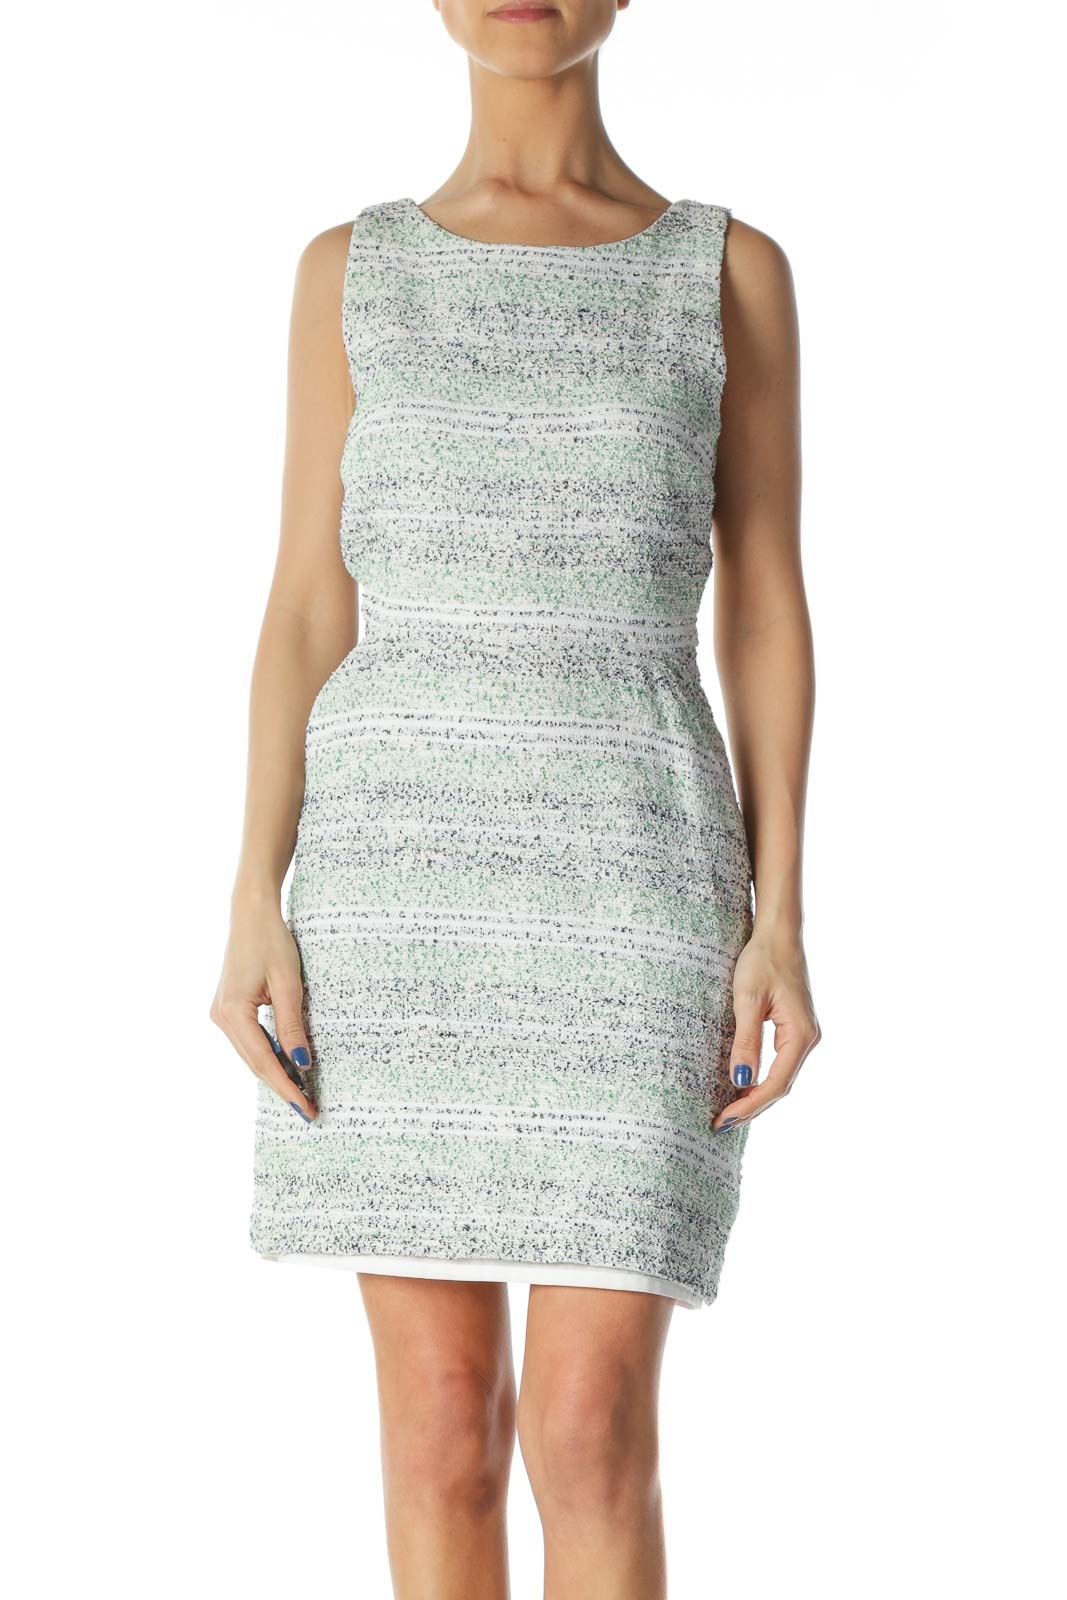 Green, White and Blue Knit Dress